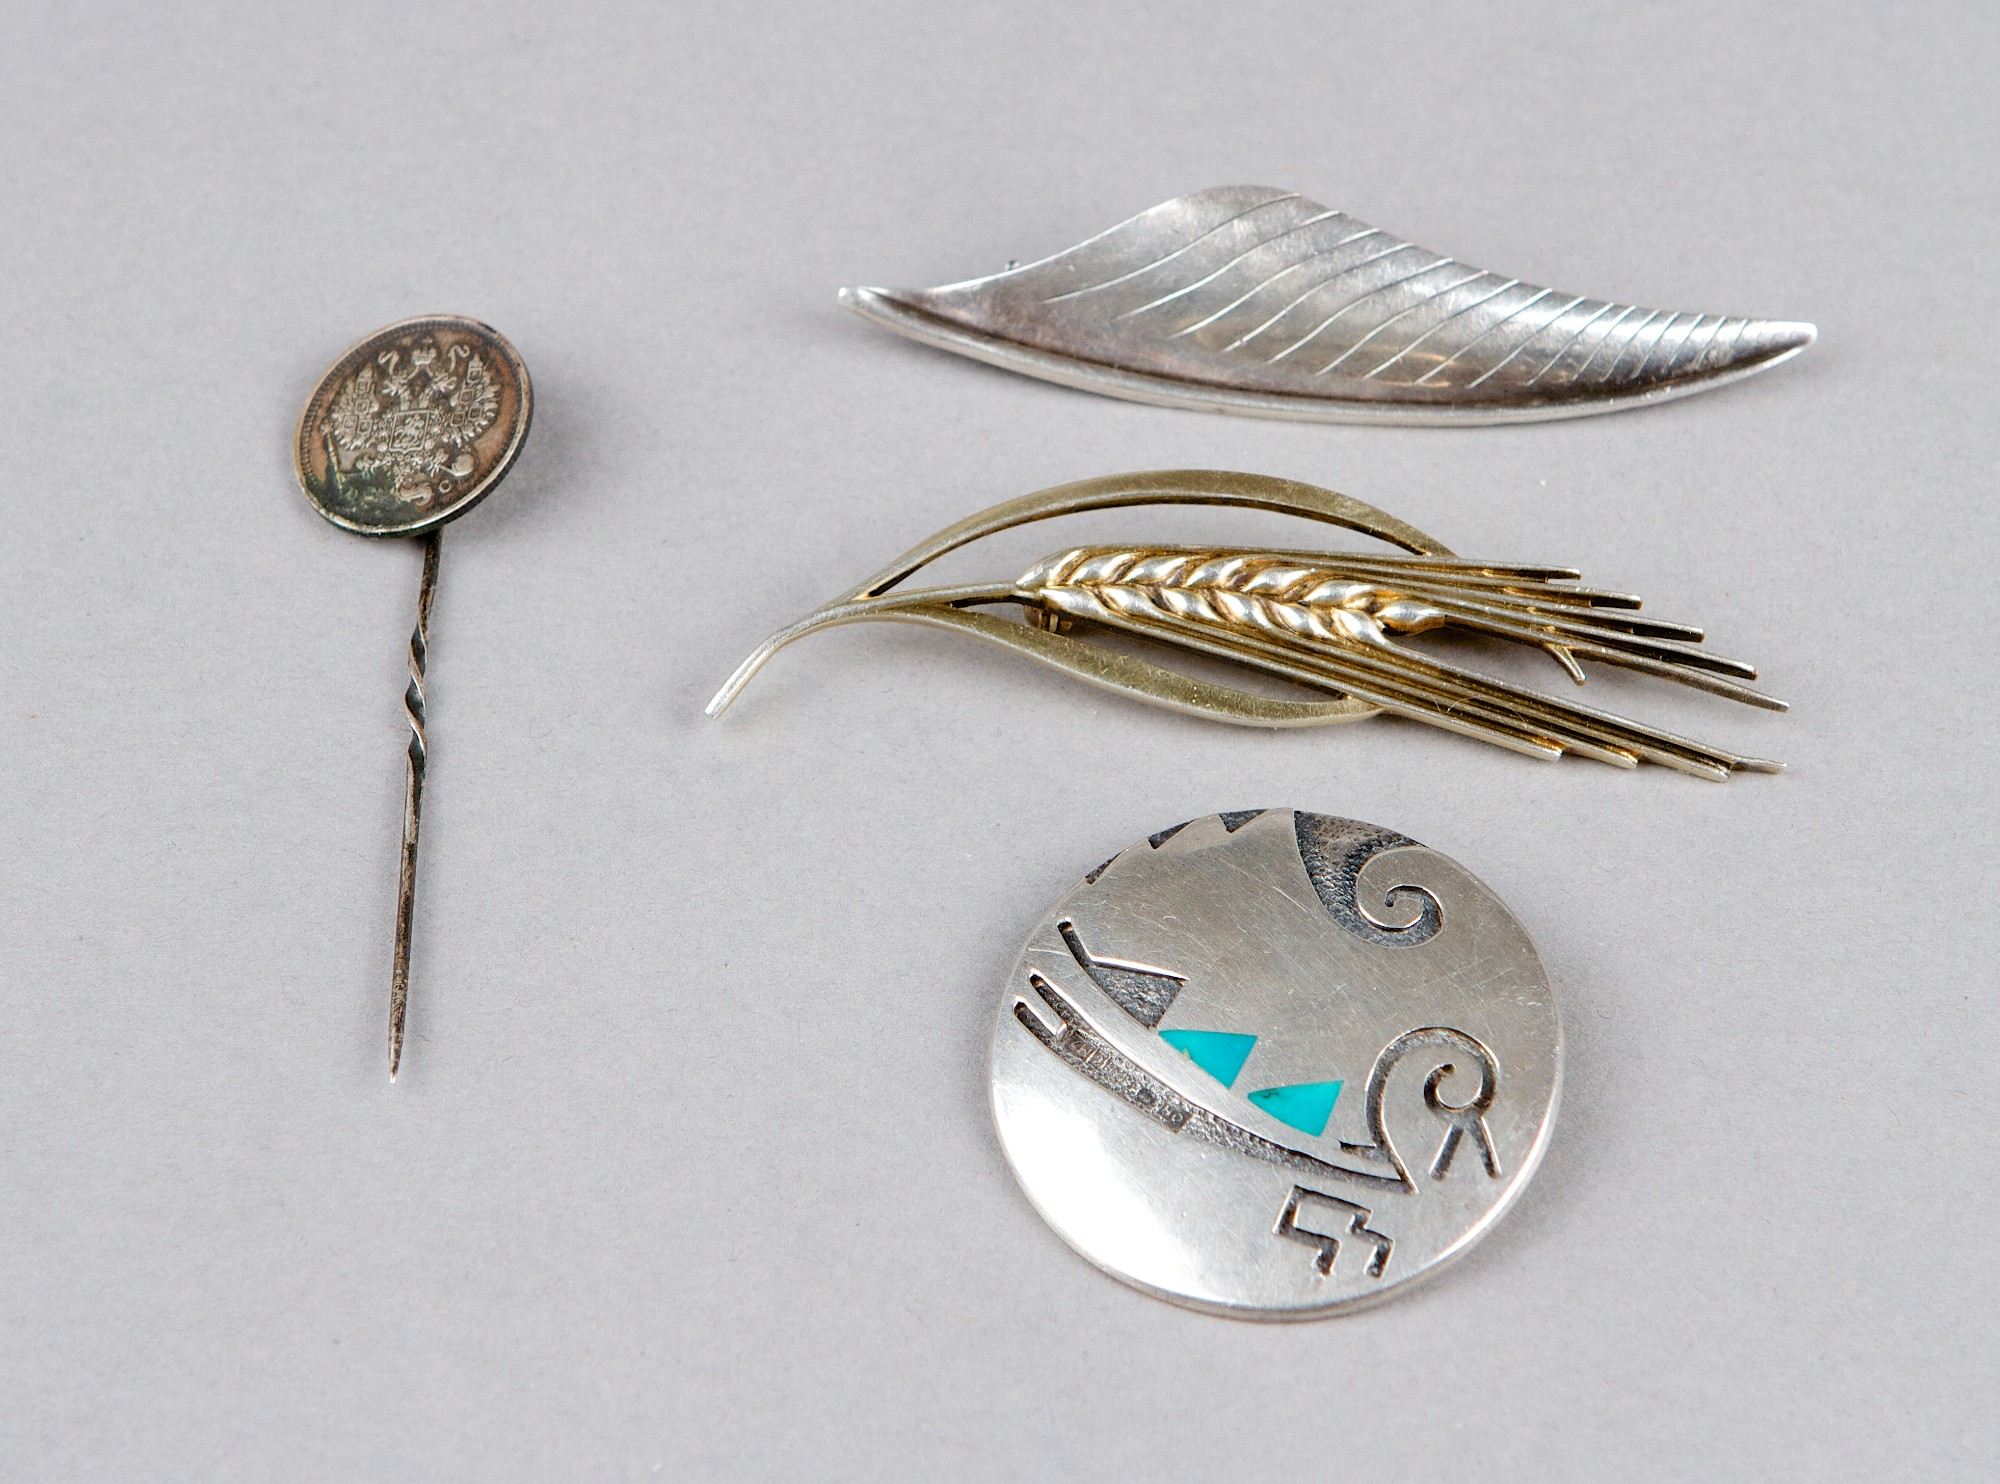 Brooch, 3 st and pins